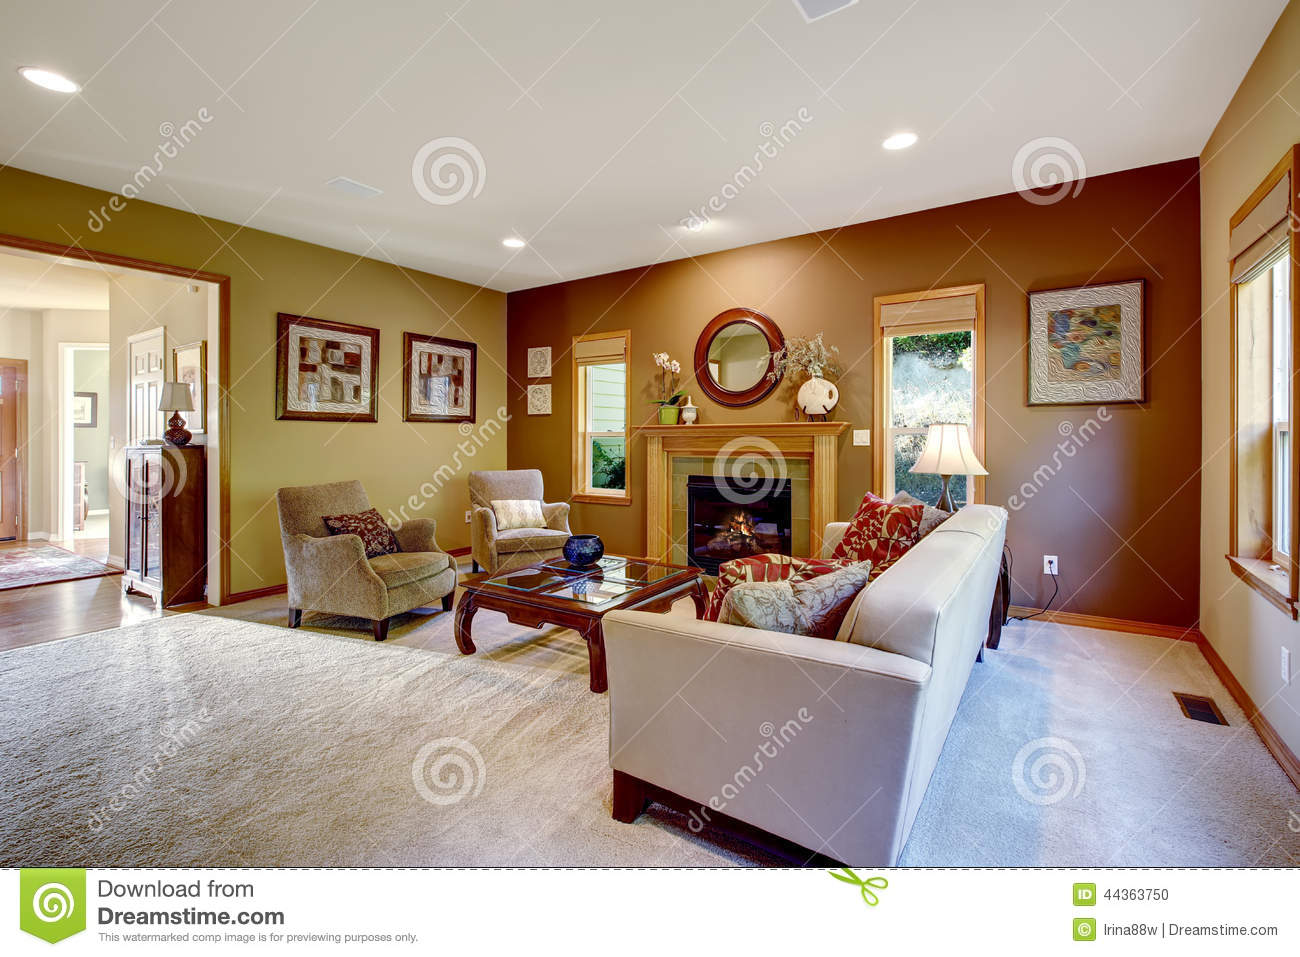 Living room with contrast walls and fireplace stock photo for Living room ideas mustard